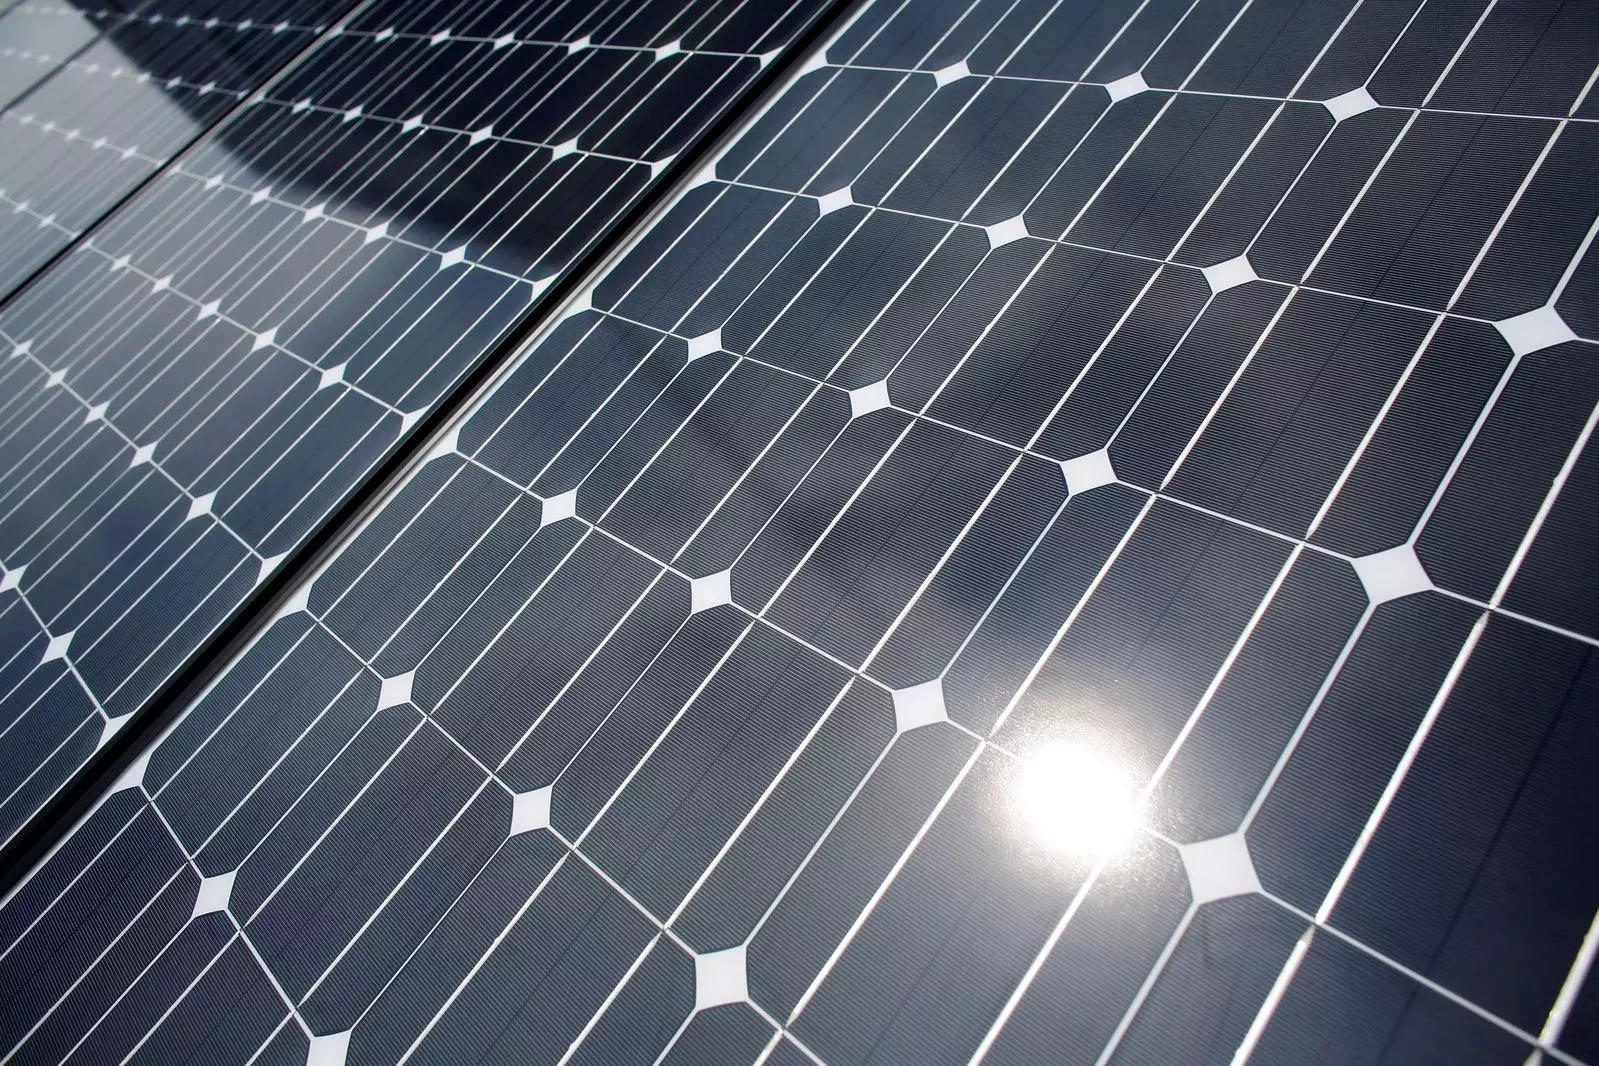 Study finds simple way to desalinate water using solar energy